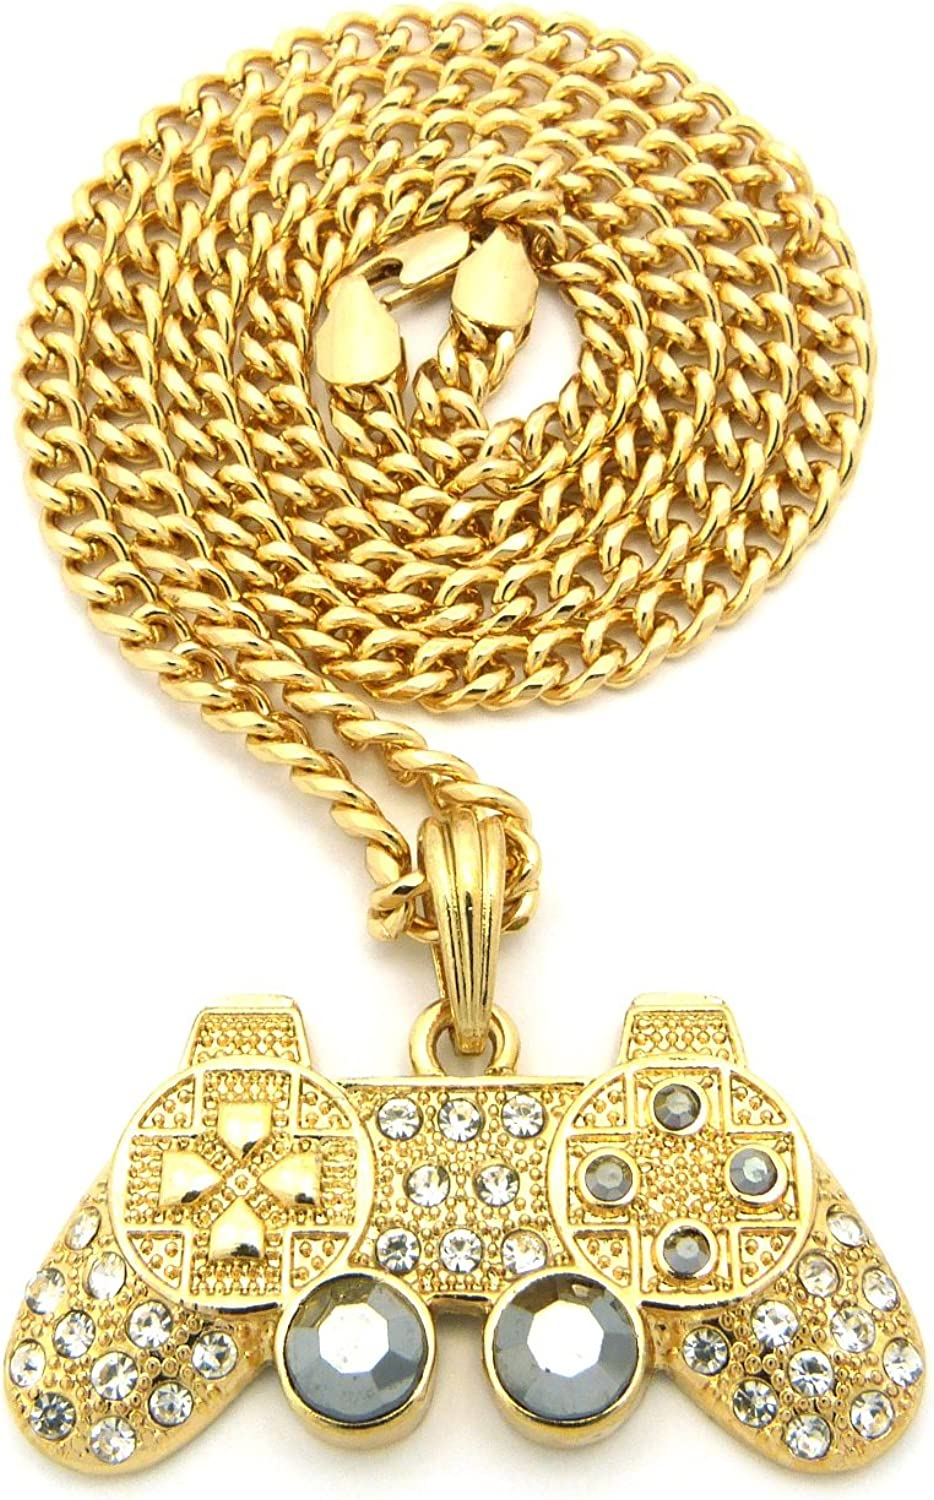 NYFASHION101 Iced Out Game Controller Micro Pendant with 5mm 24